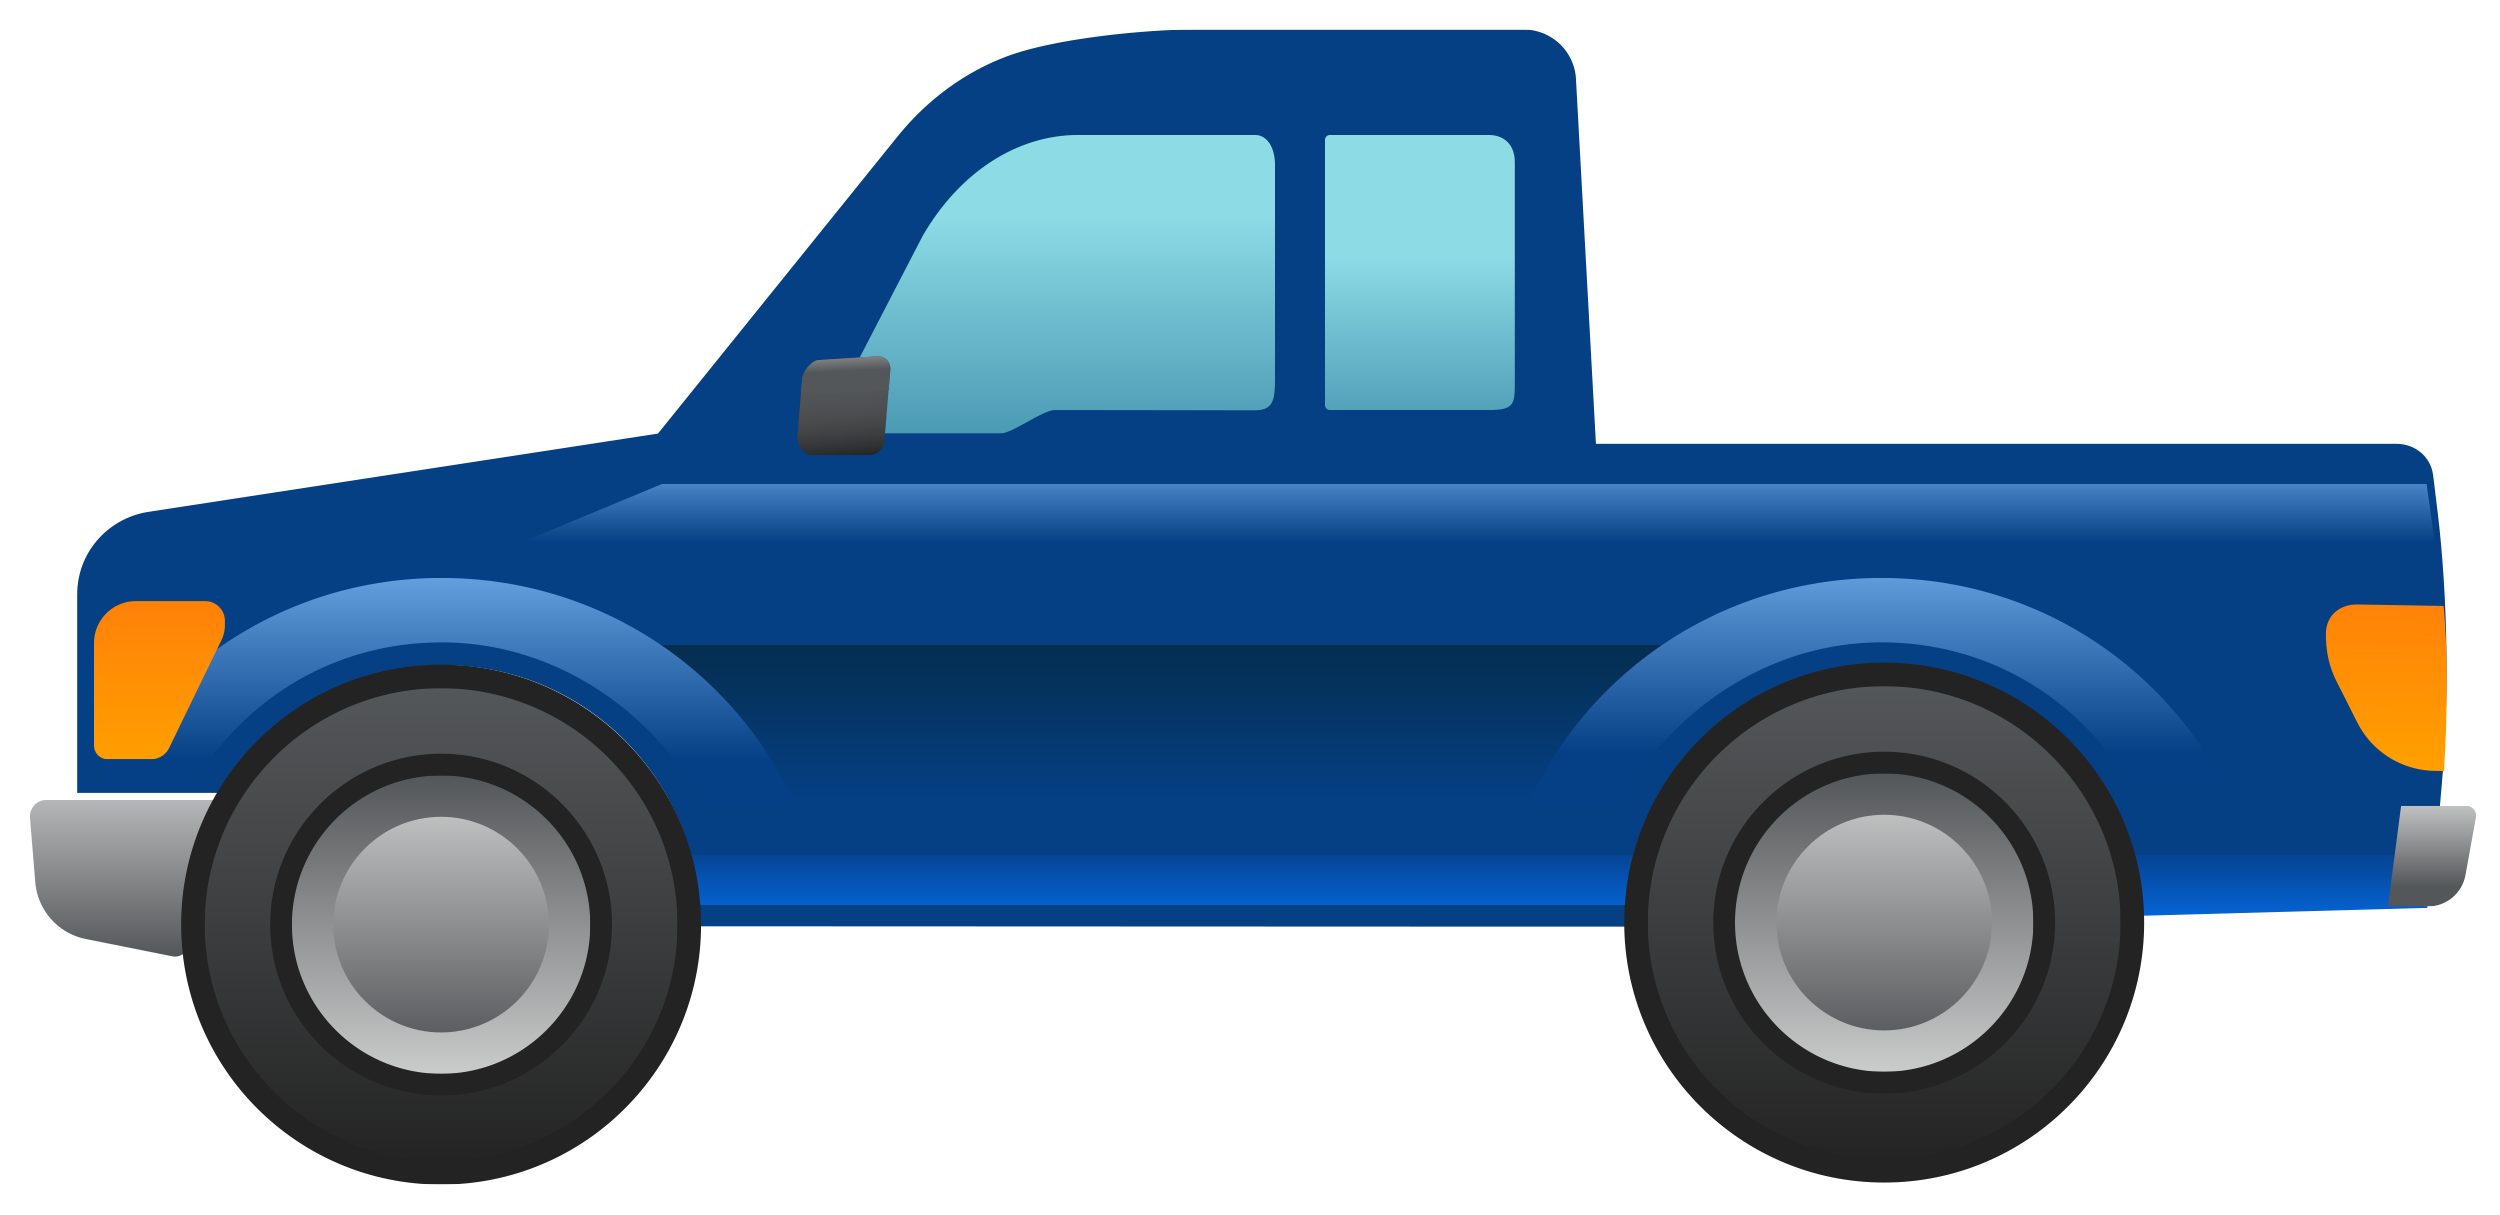 Ford's latest design isn't an F-150 or Ranger. It's an emoji